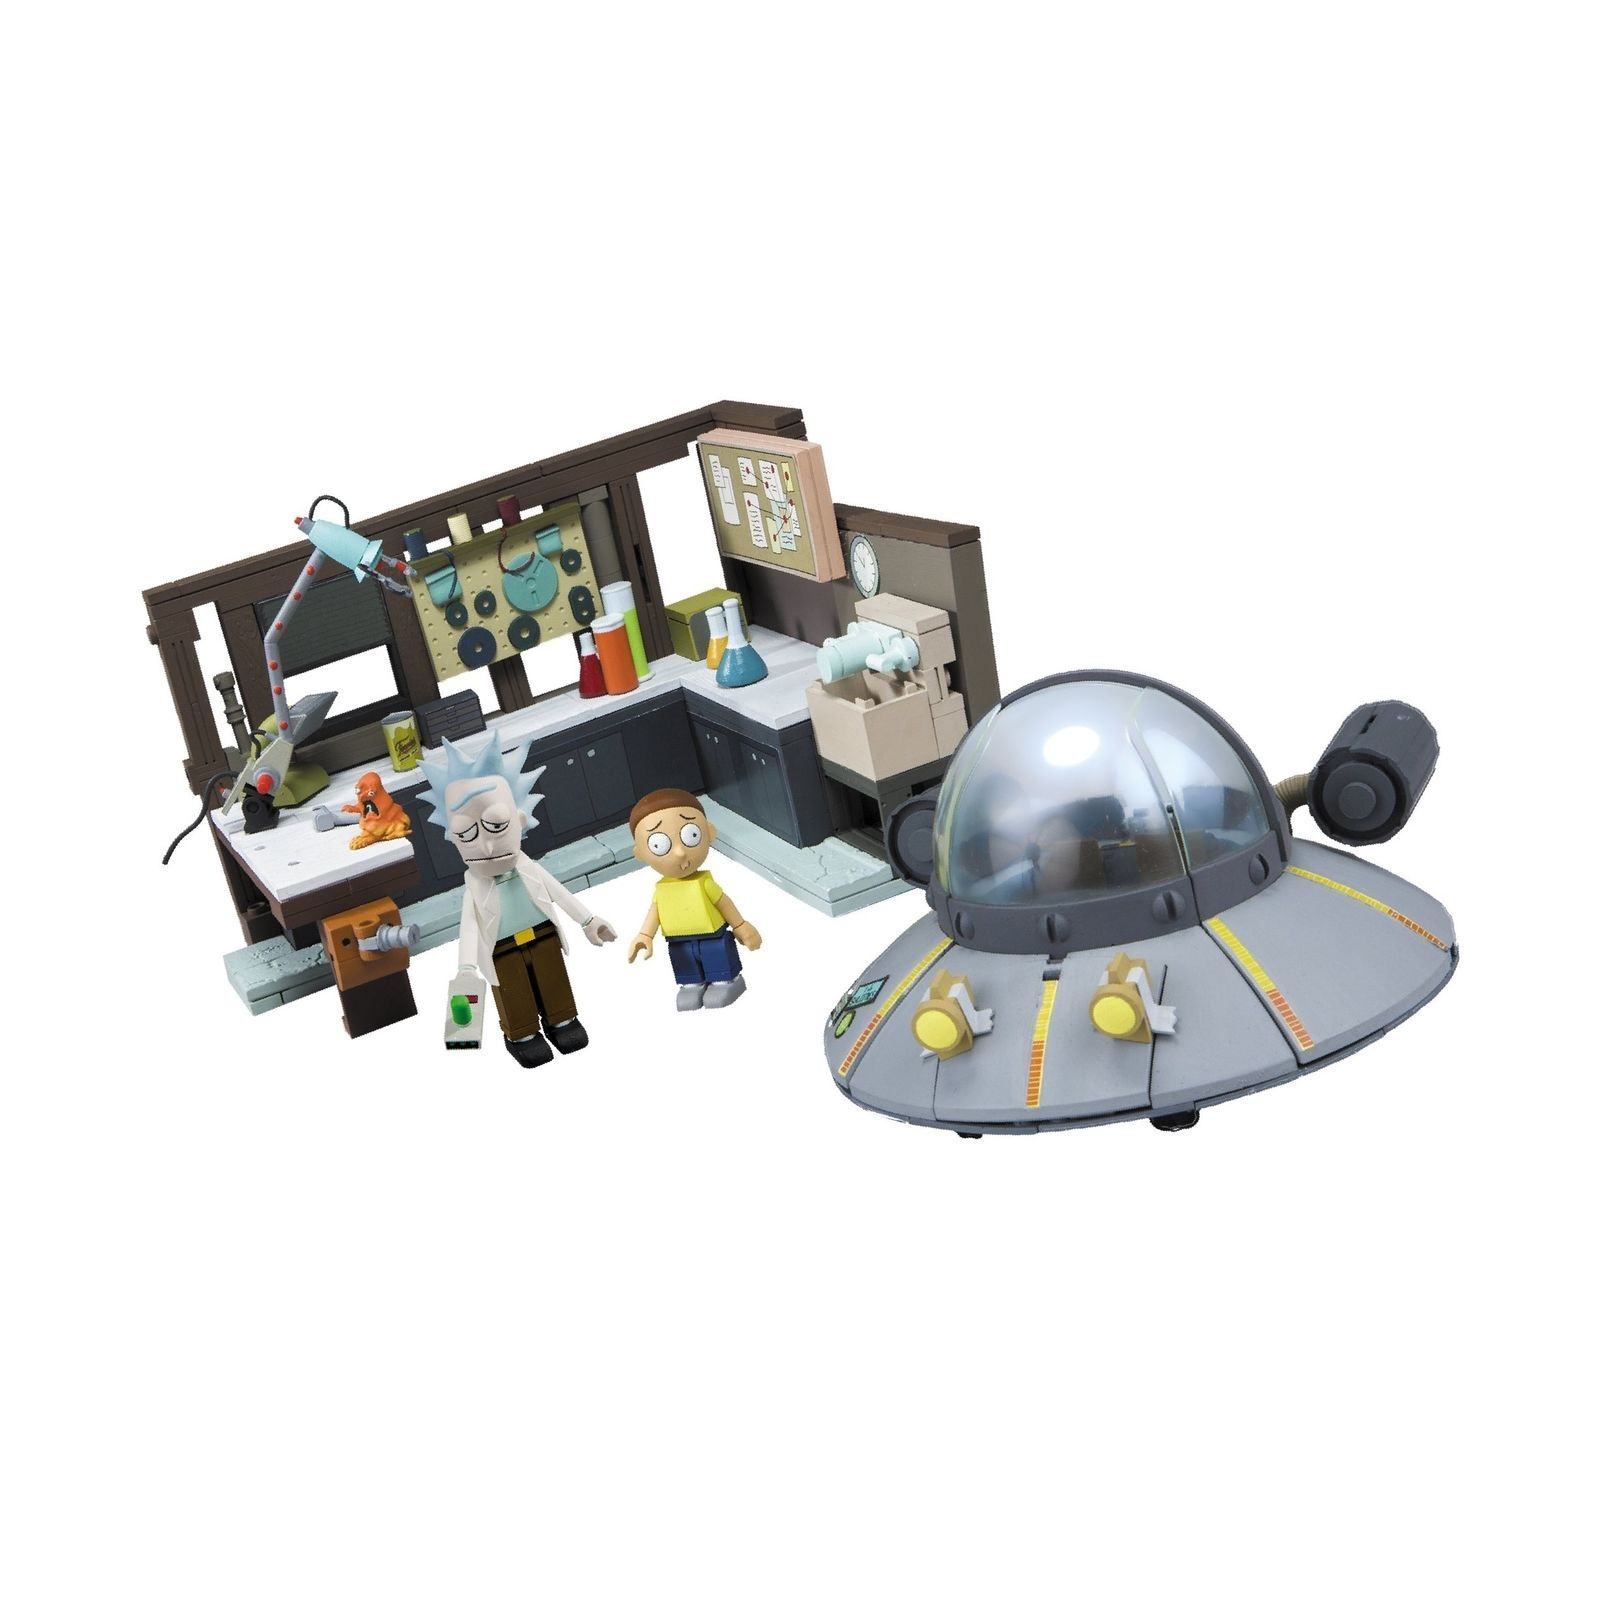 McFarlane Toys Rick and Morty Spaceship and Garage [New] Construction Set Toy